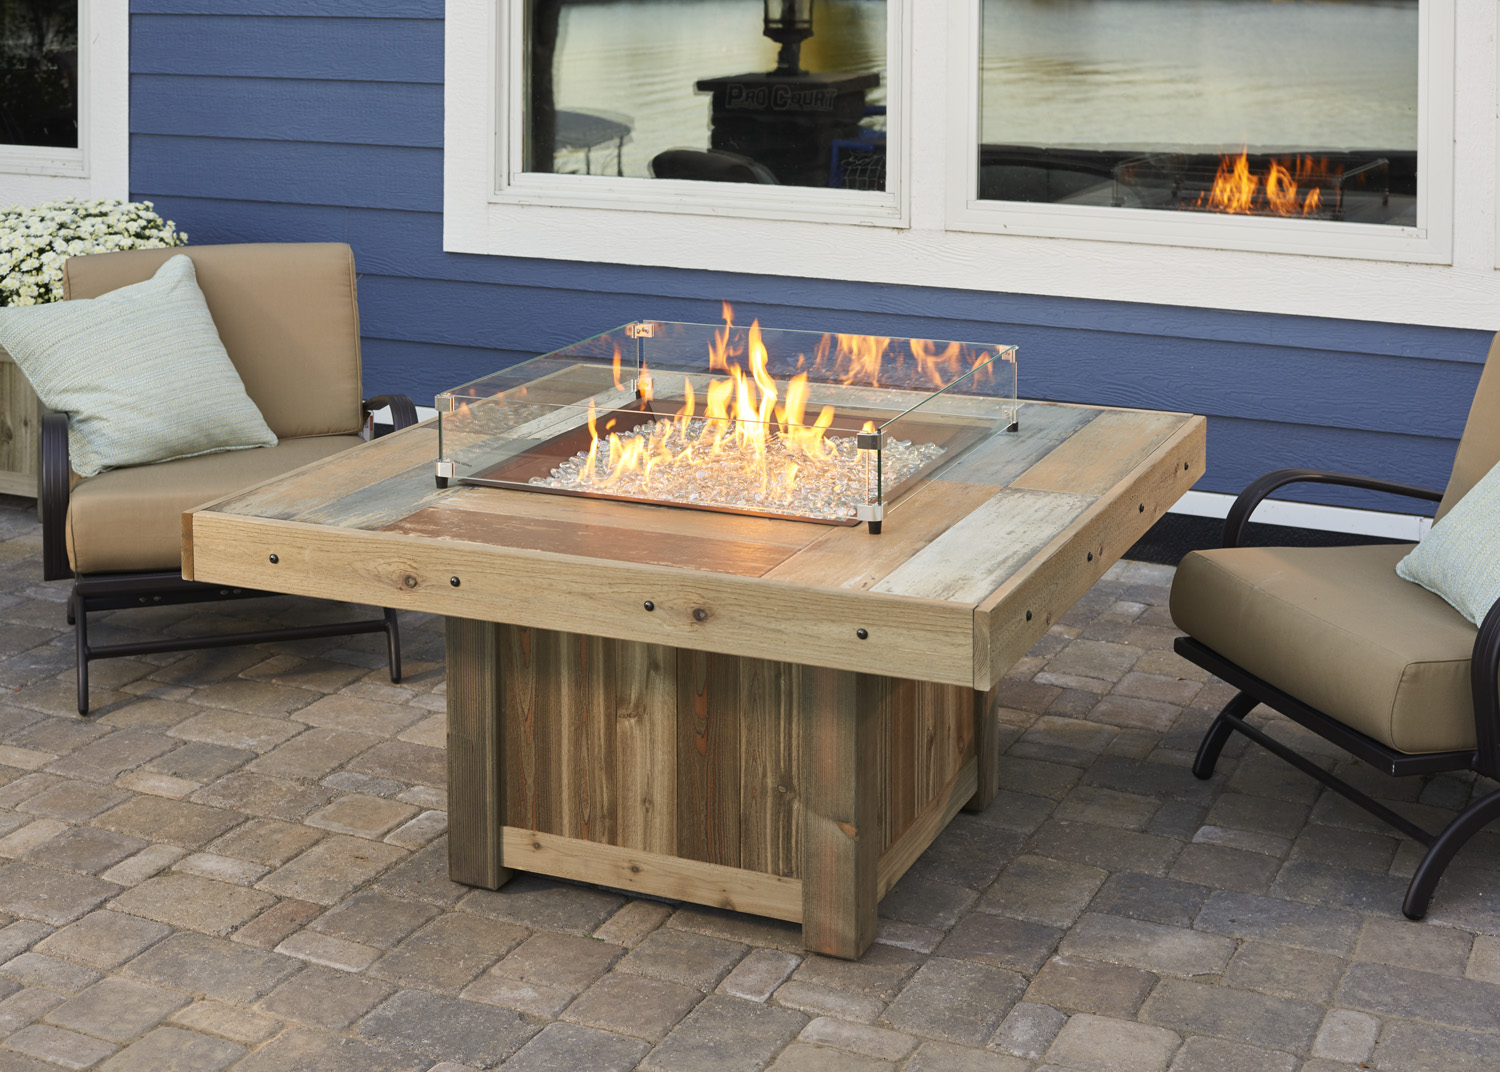 new fire table products for 2016. Black Bedroom Furniture Sets. Home Design Ideas